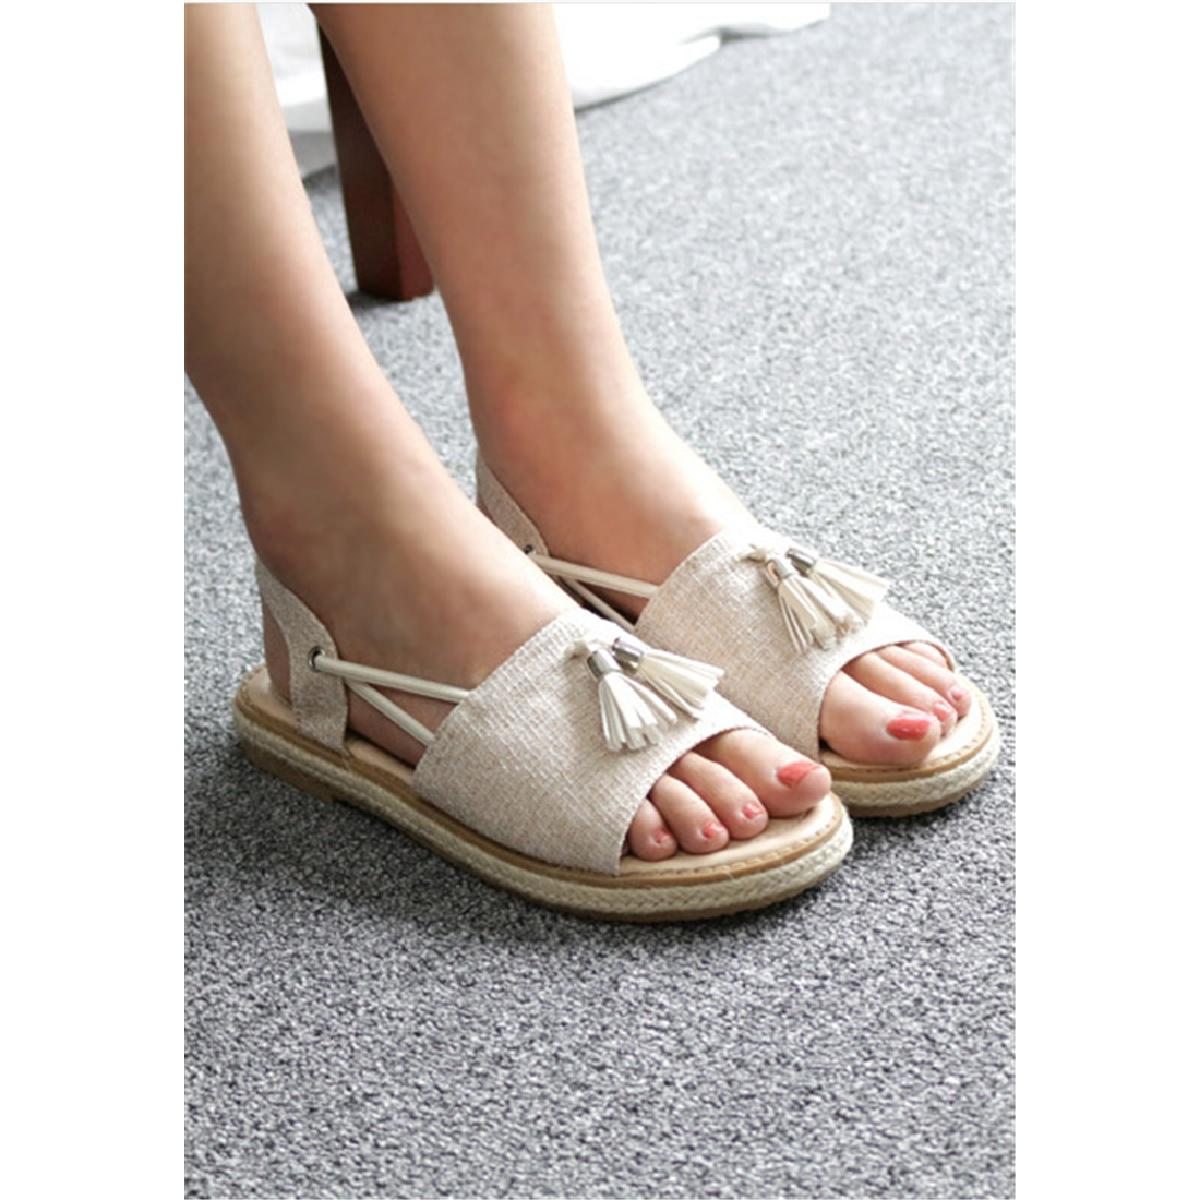 Korean-made Fabric Leather Flat Sandals